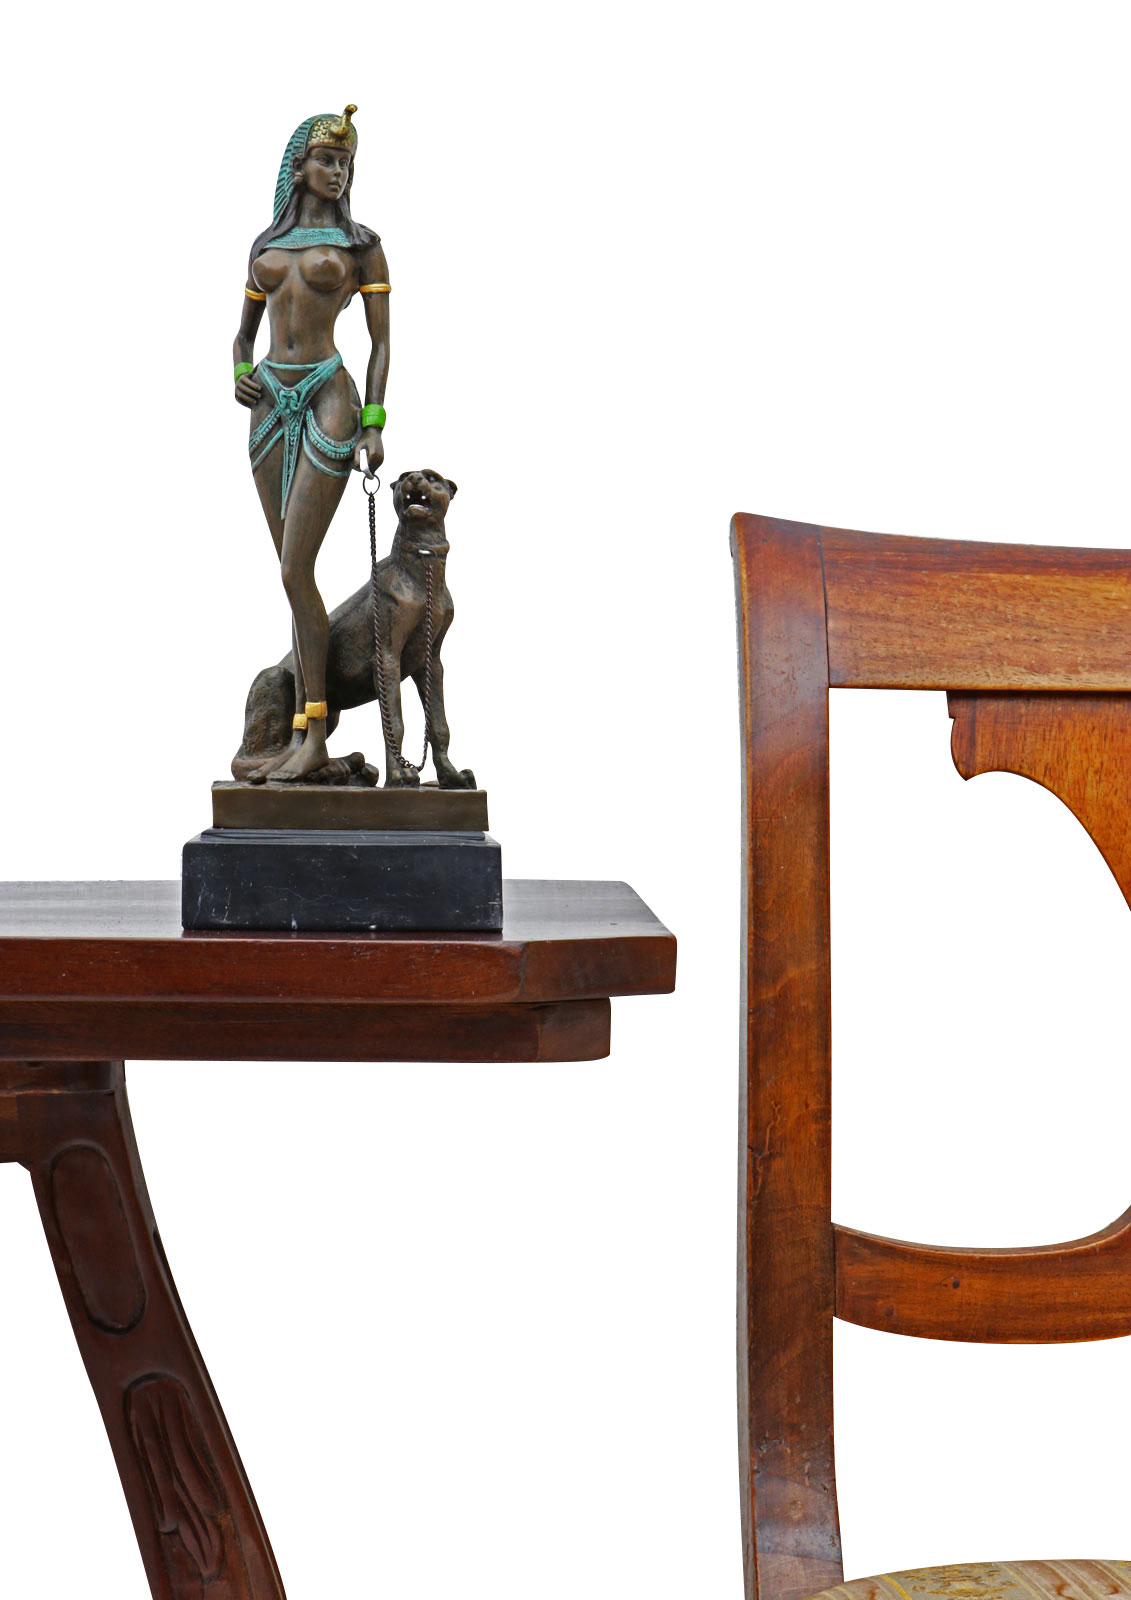 Cleopatra Ornate Traditional Cherry Formal Dining Room: A Bronze Sculpture Of Cleopatra With Panther 26cm